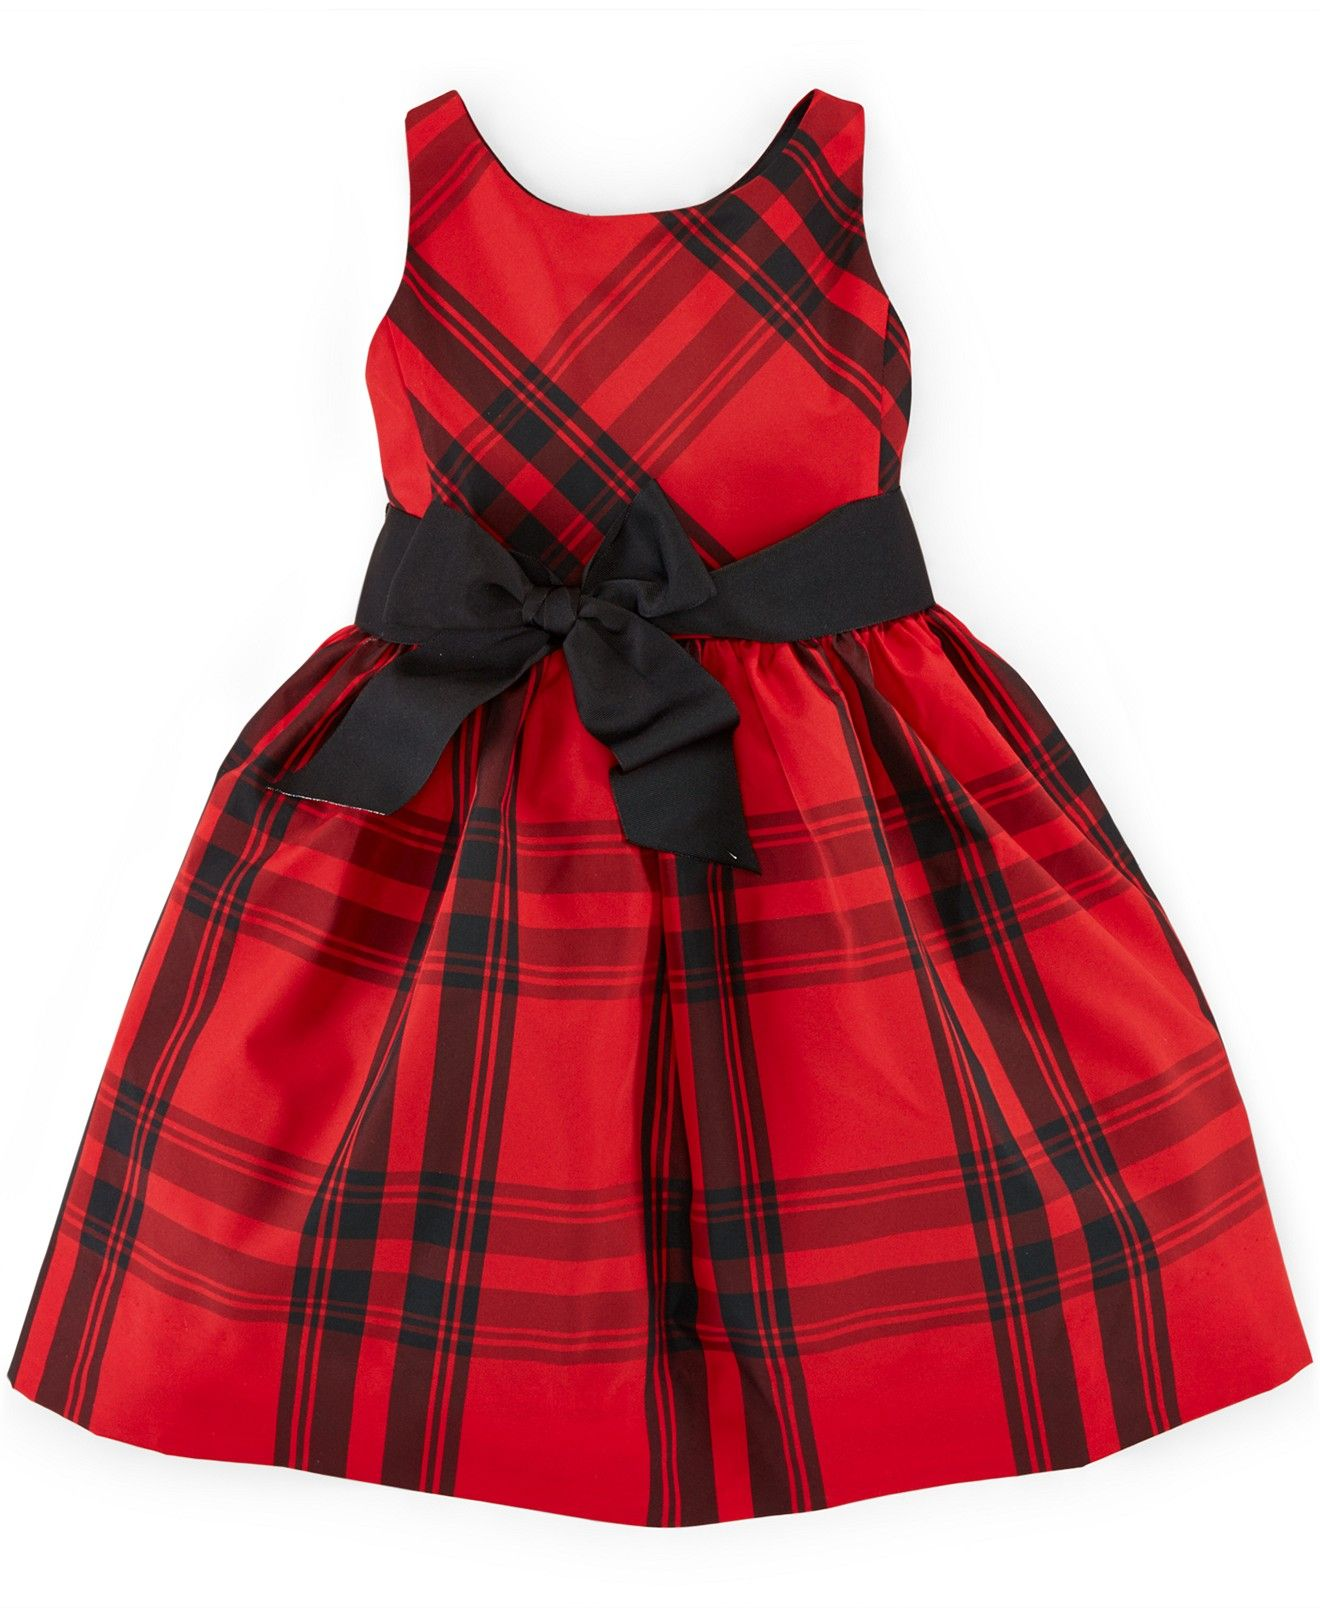 dfac5c574 Ralph Lauren Little Girls  Plaid Fit-And-Flare Dress - Dresses ...